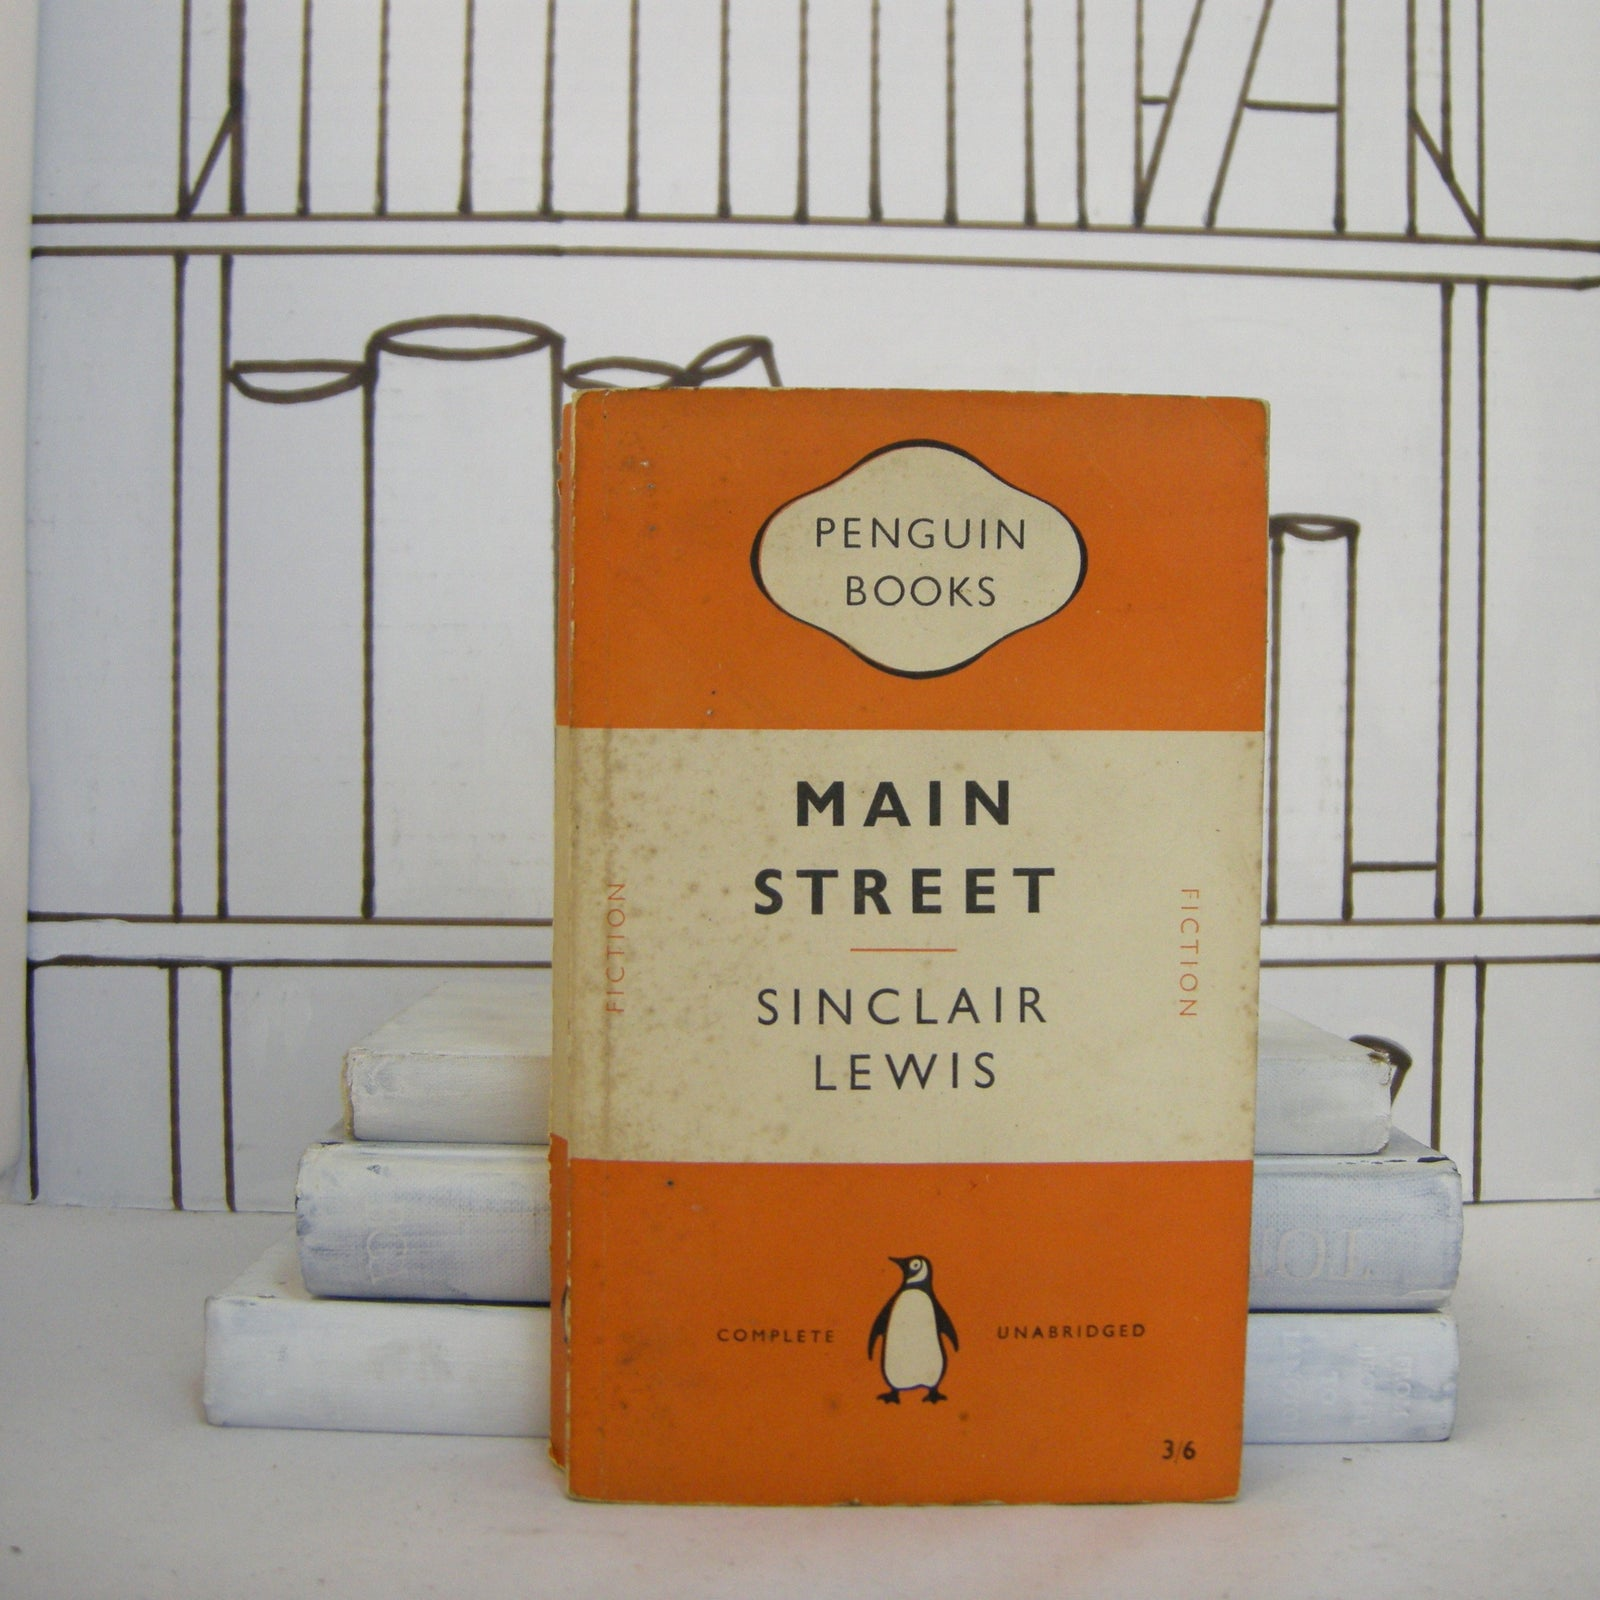 Book - Main Street By Sinclair Lewis (Vintage, Penguin)